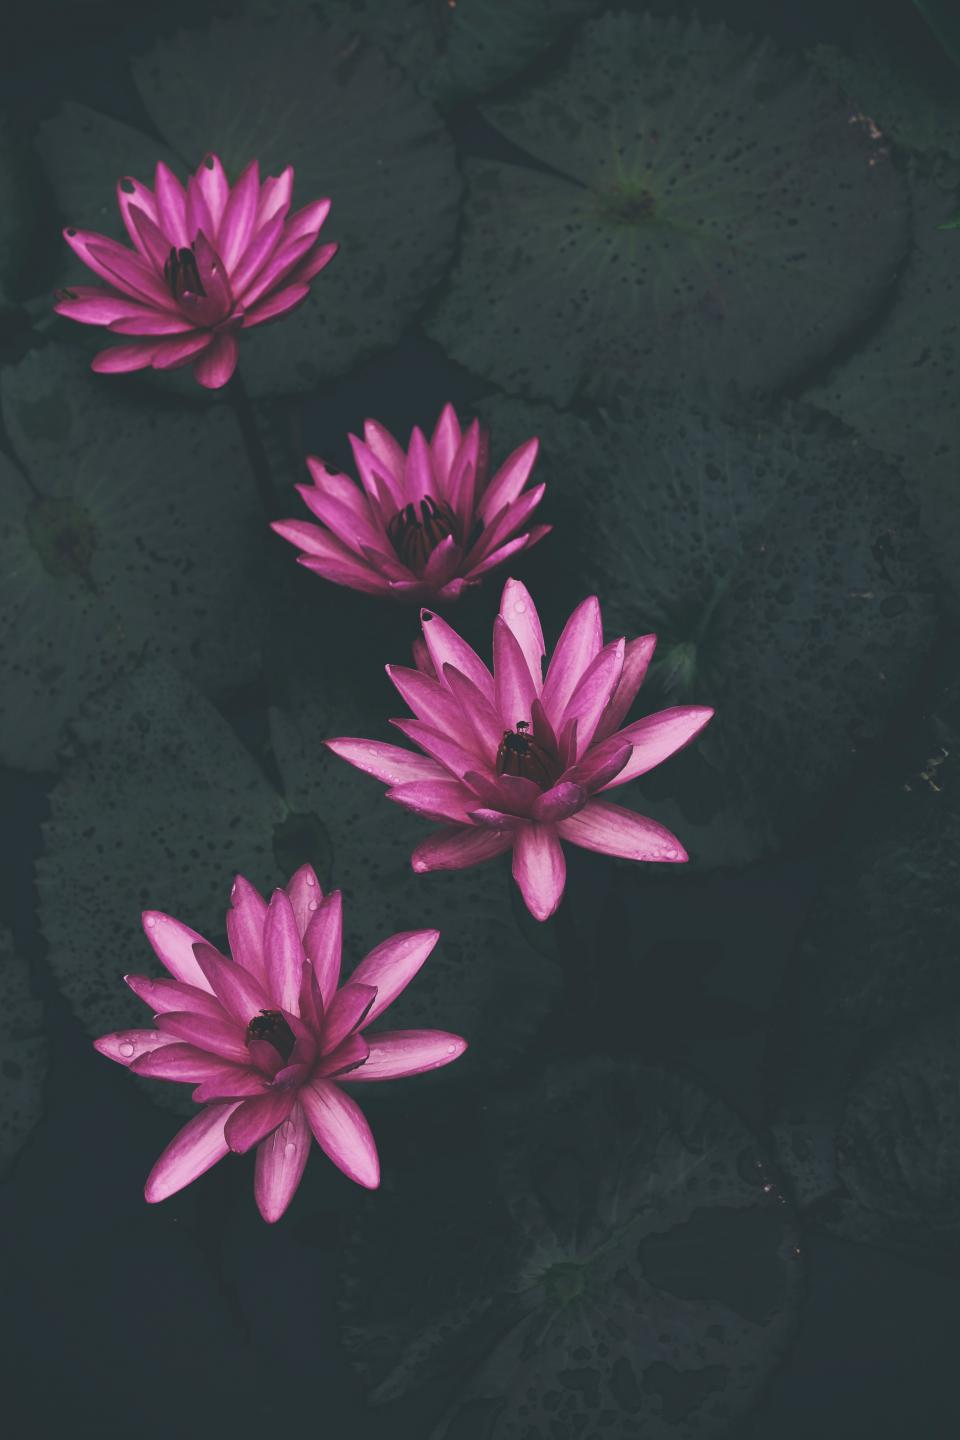 waterlily plants pink petal flower nature water wet leaves